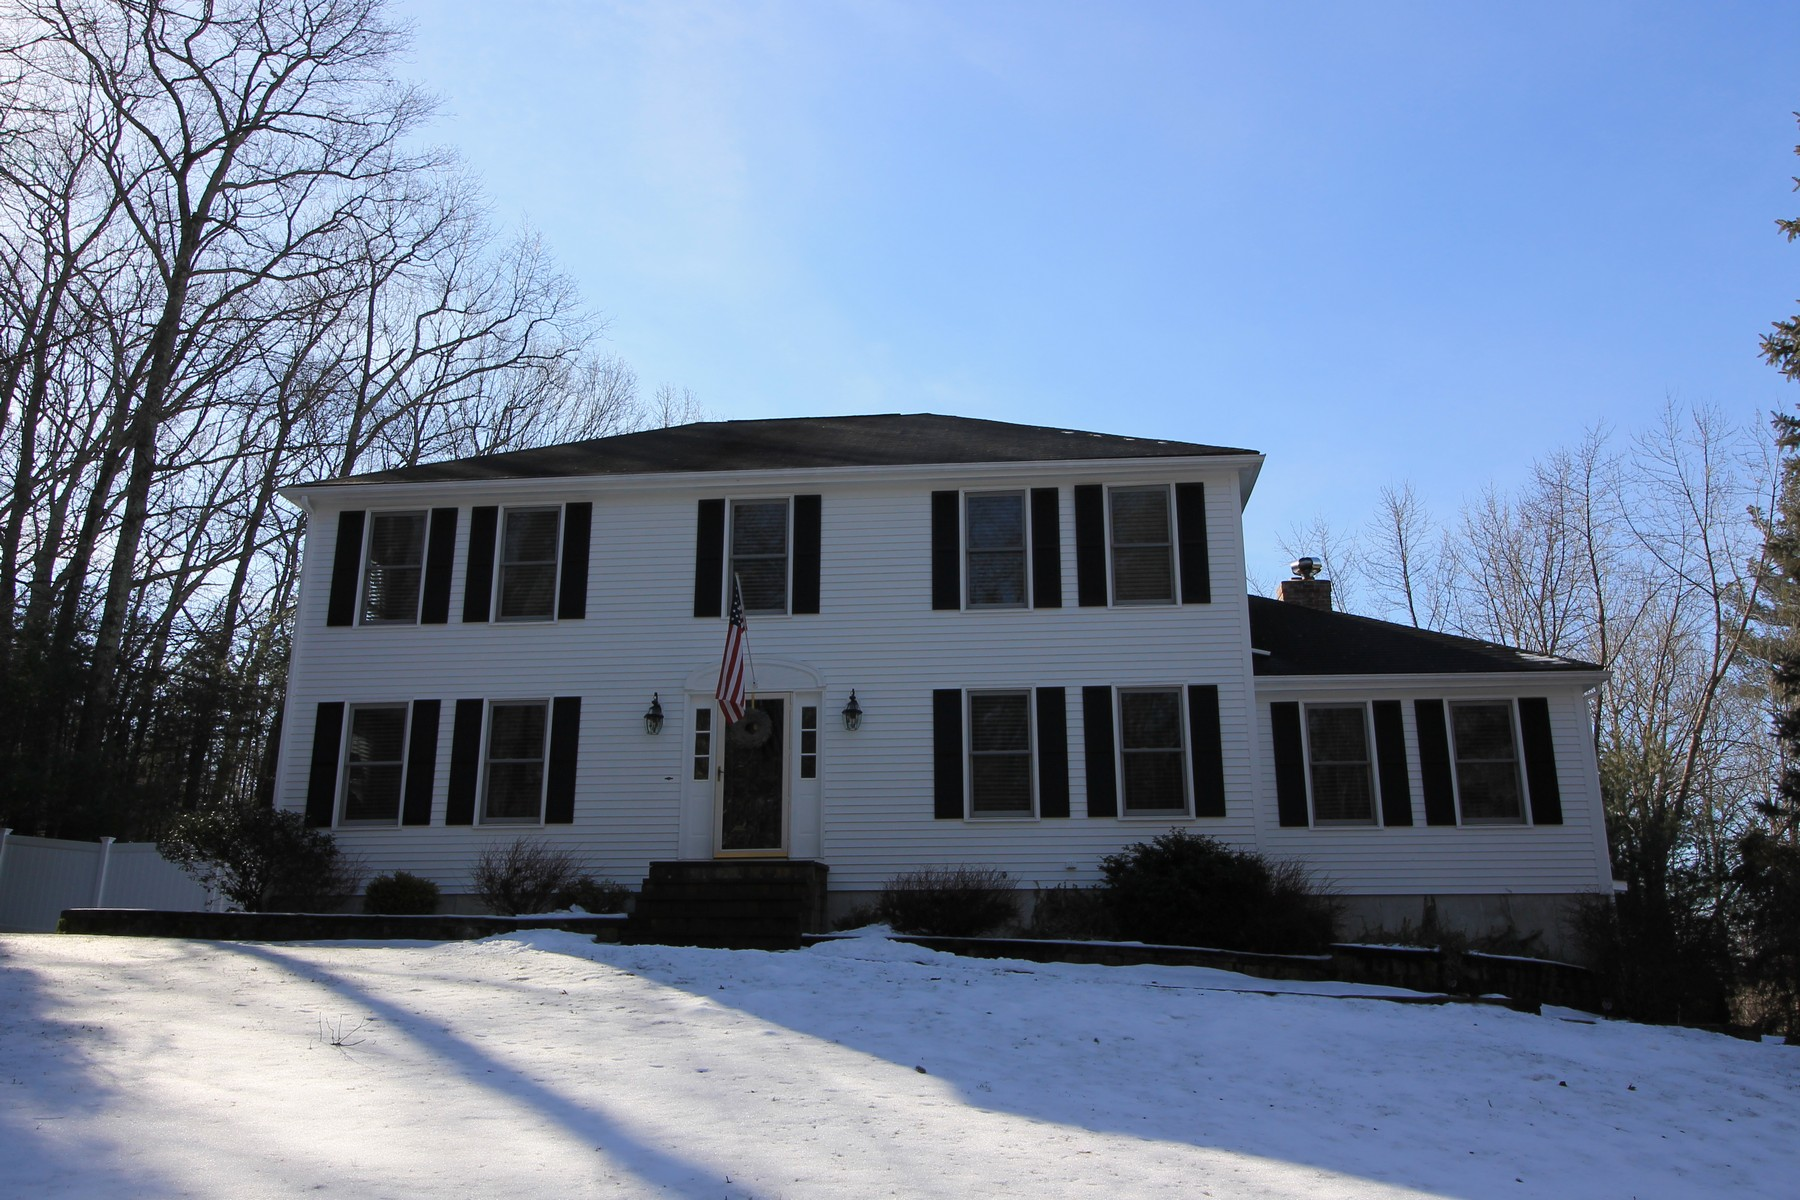 Single Family Home for Active at Charming Colonial 56 Whitewood Rd Milford, Massachusetts 01757 United States